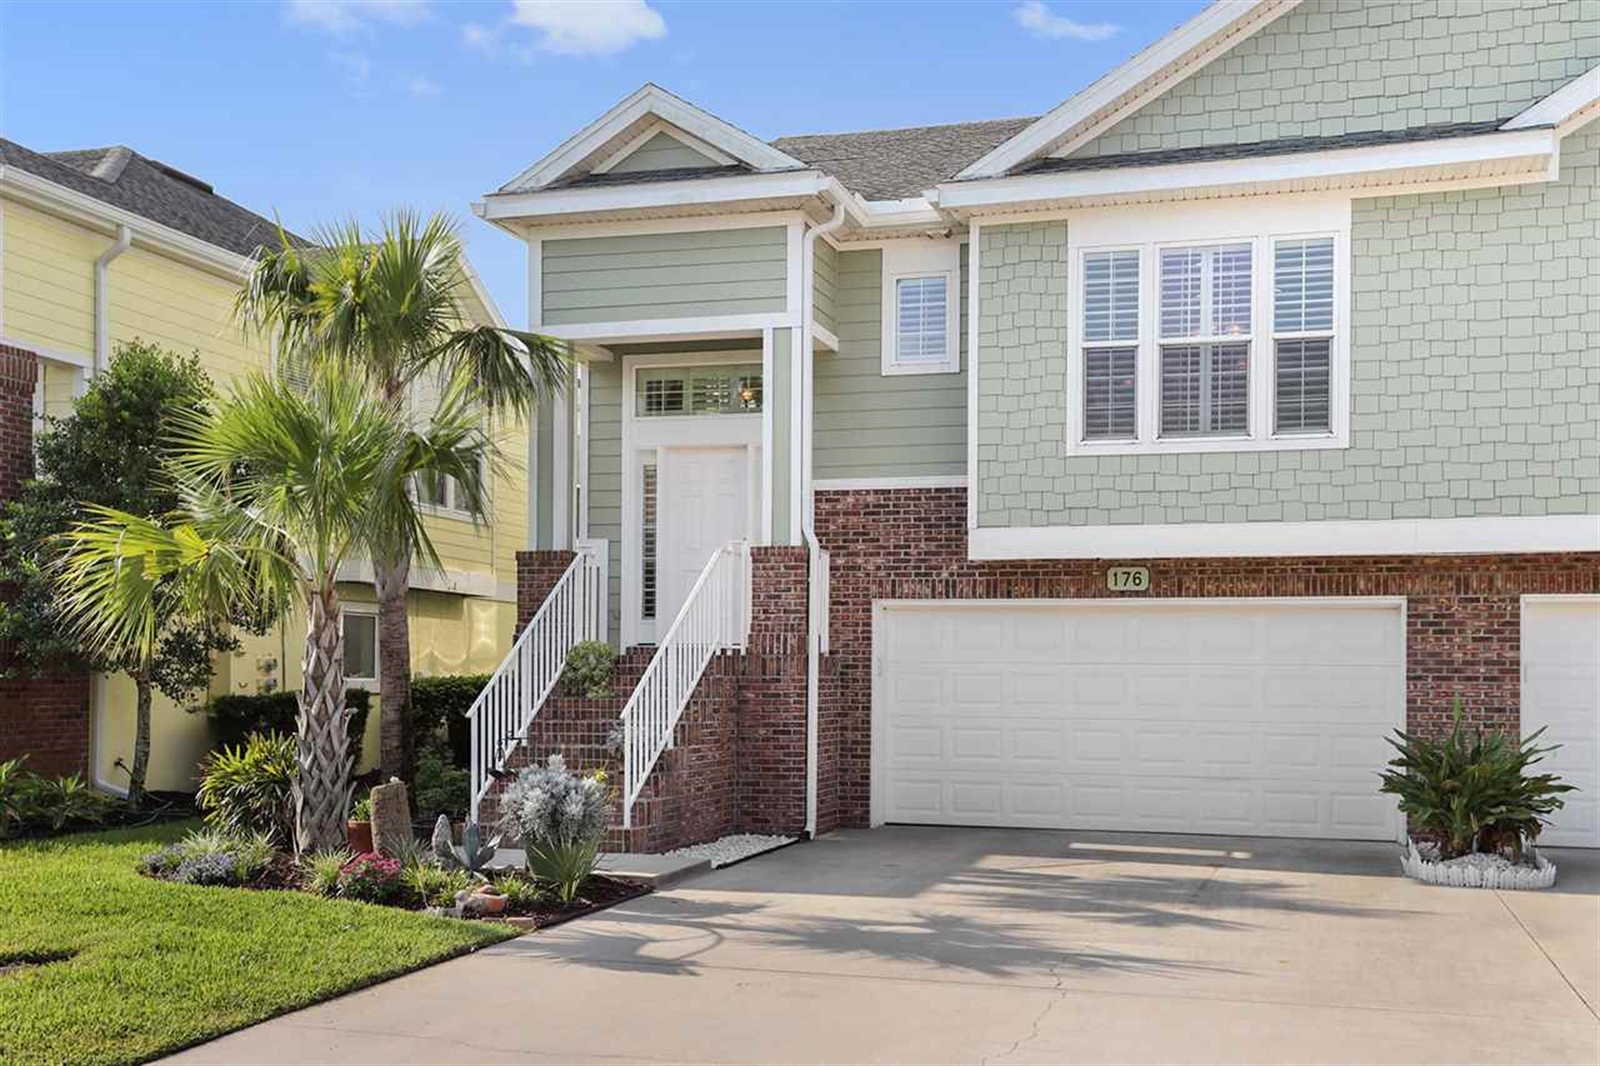 Real Estate Photography - 176 Sunset Cir N, Saint Augustine, FL, 32080 - Location 1